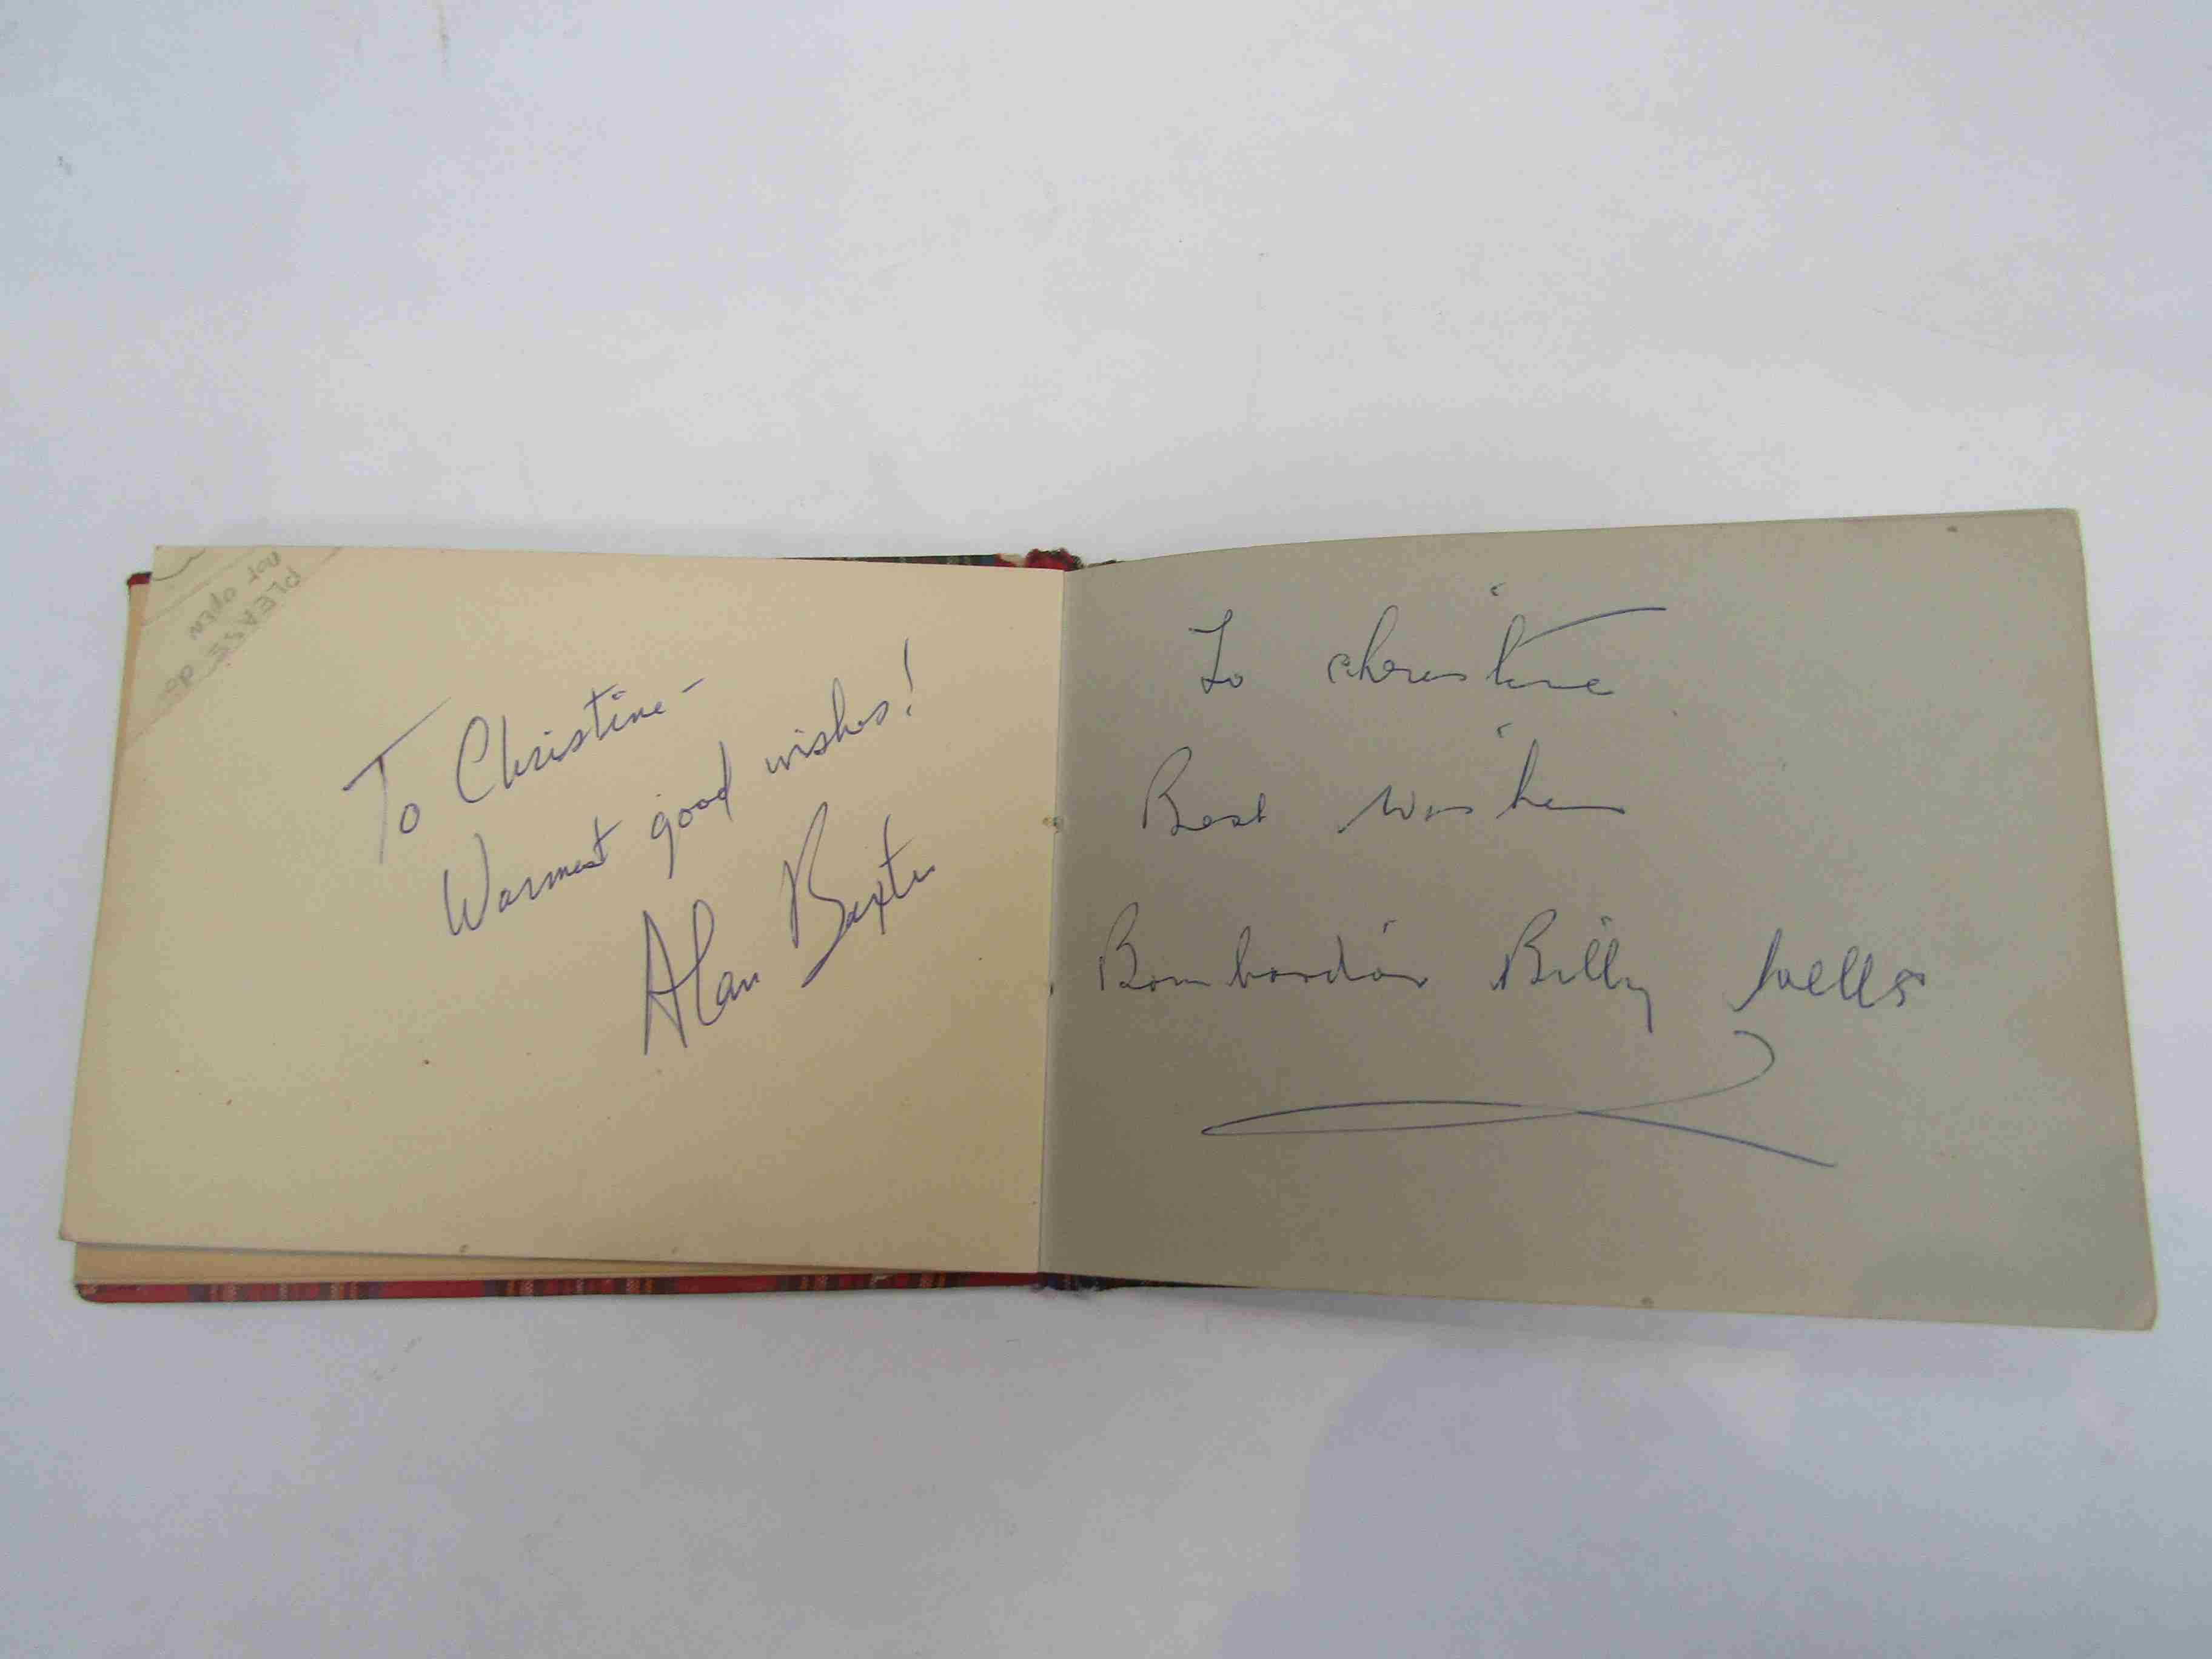 Two 1950s/60s autograph books containing autographs by Benny Hill, Honor Blackman, Barbara Shelley, - Image 22 of 34